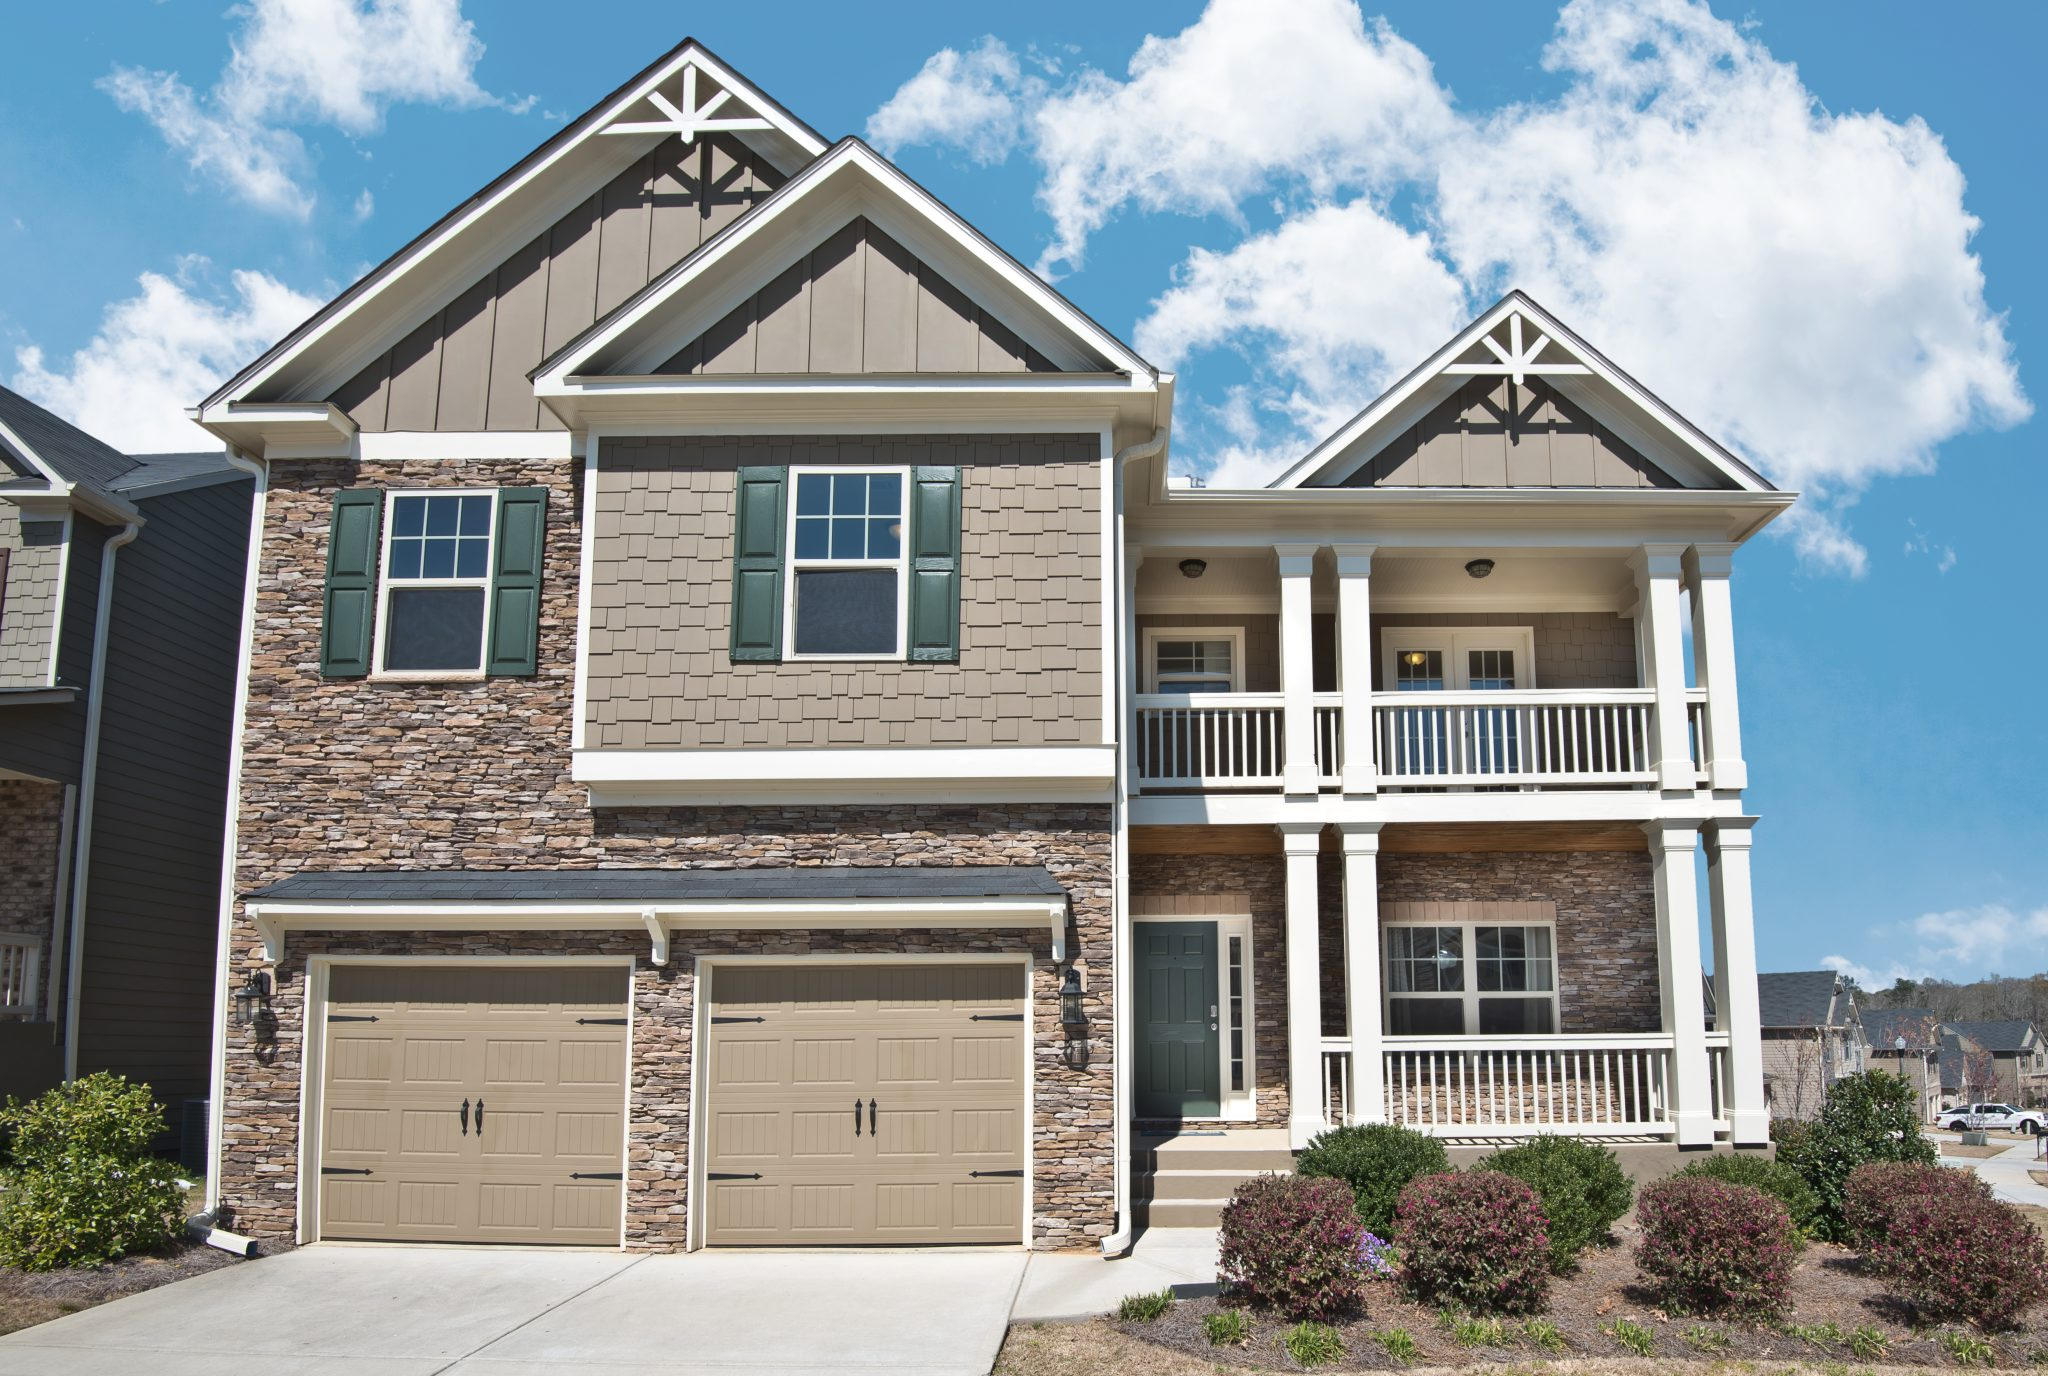 Kerley Family Homes named to 2019 Builder 100 List - new home in Silverbrooke